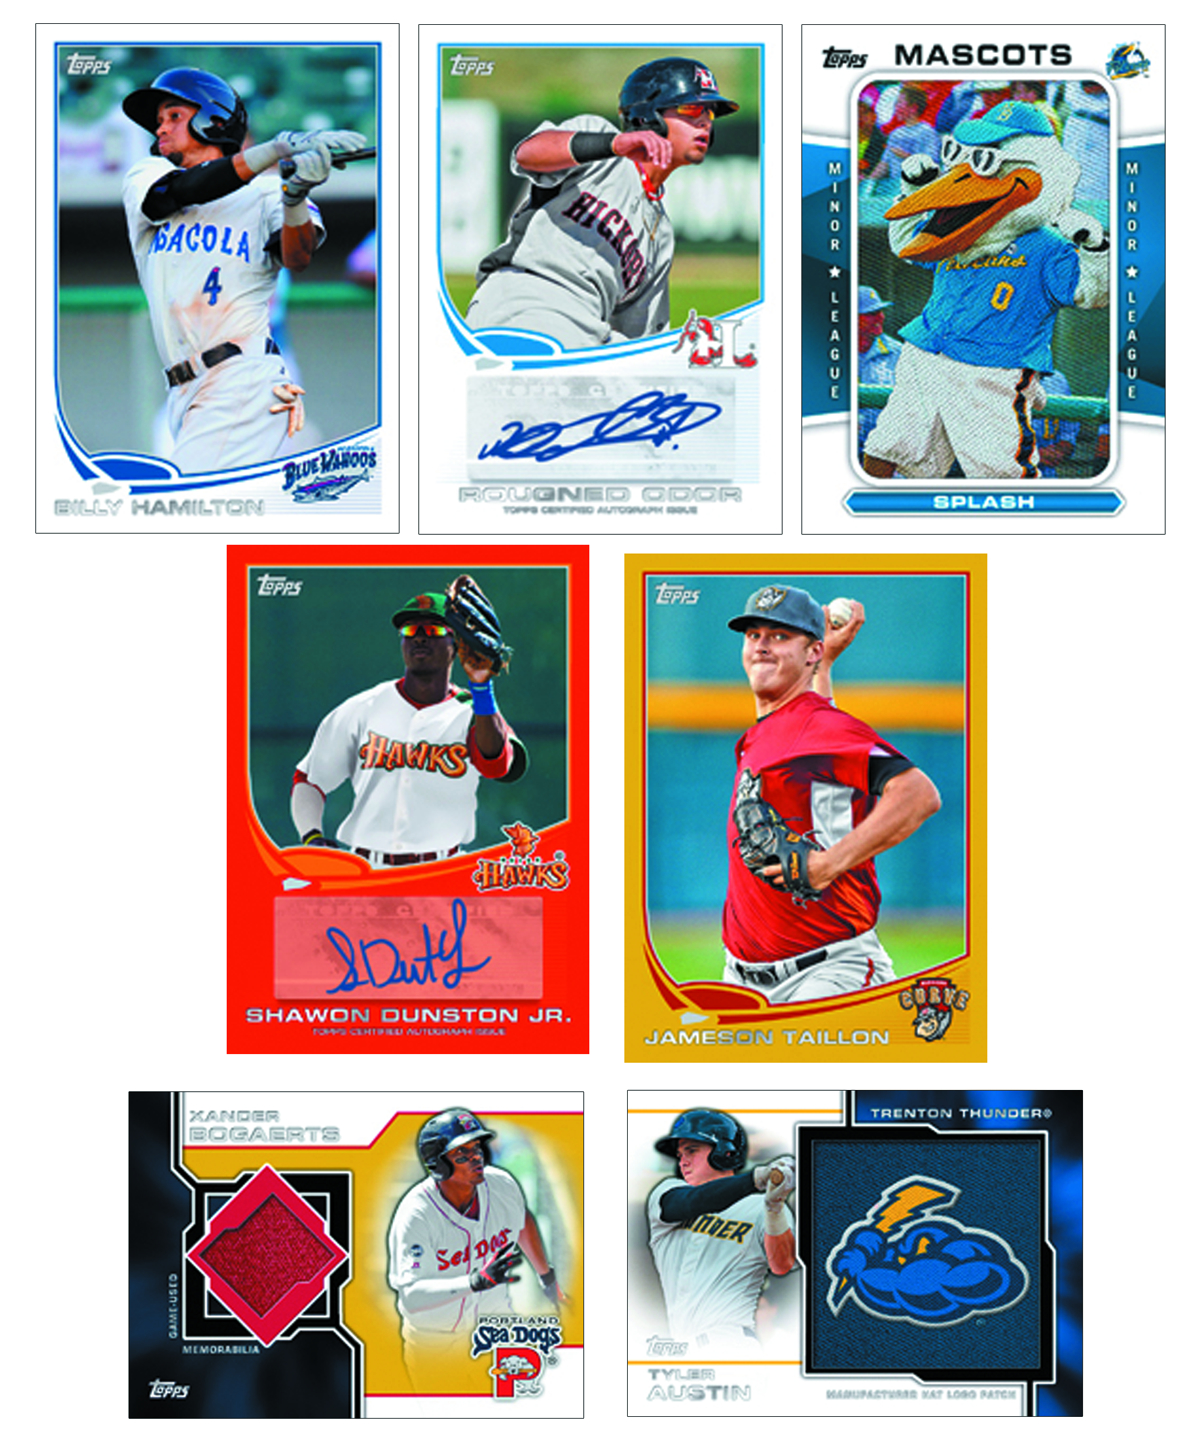 TOPPS 2013 PRO DEBUT BASEBALL T/C BOX